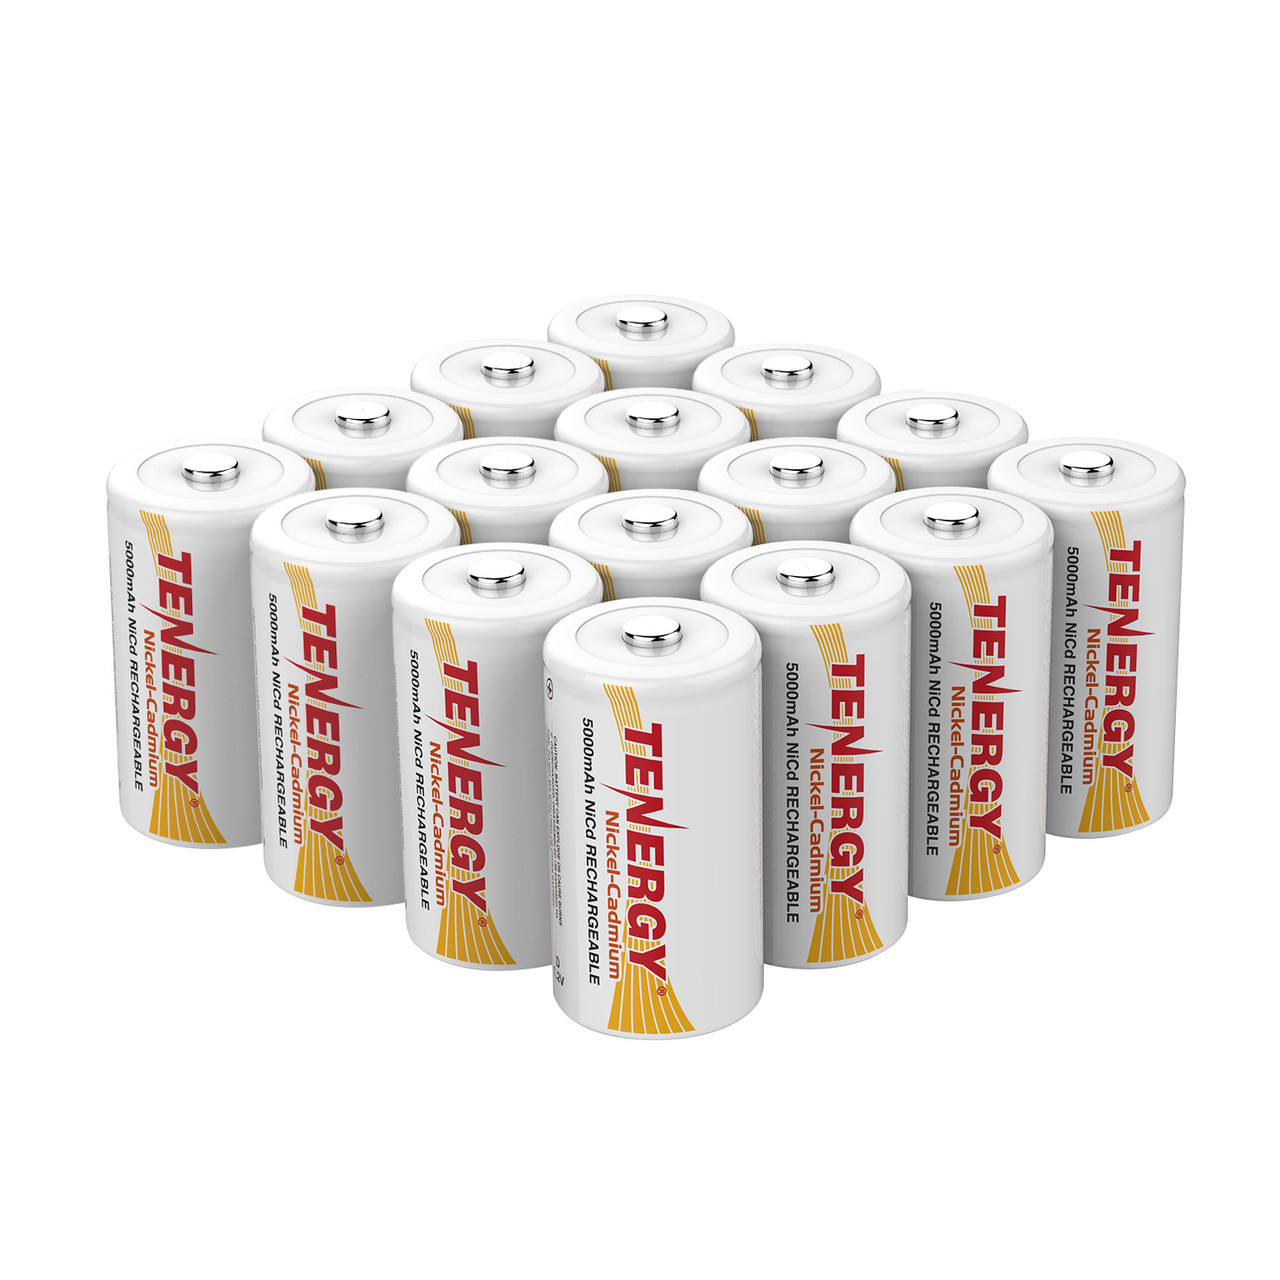 16pcs Tenergy D 5000mAh NiCd Button Top Rechargeable Battery